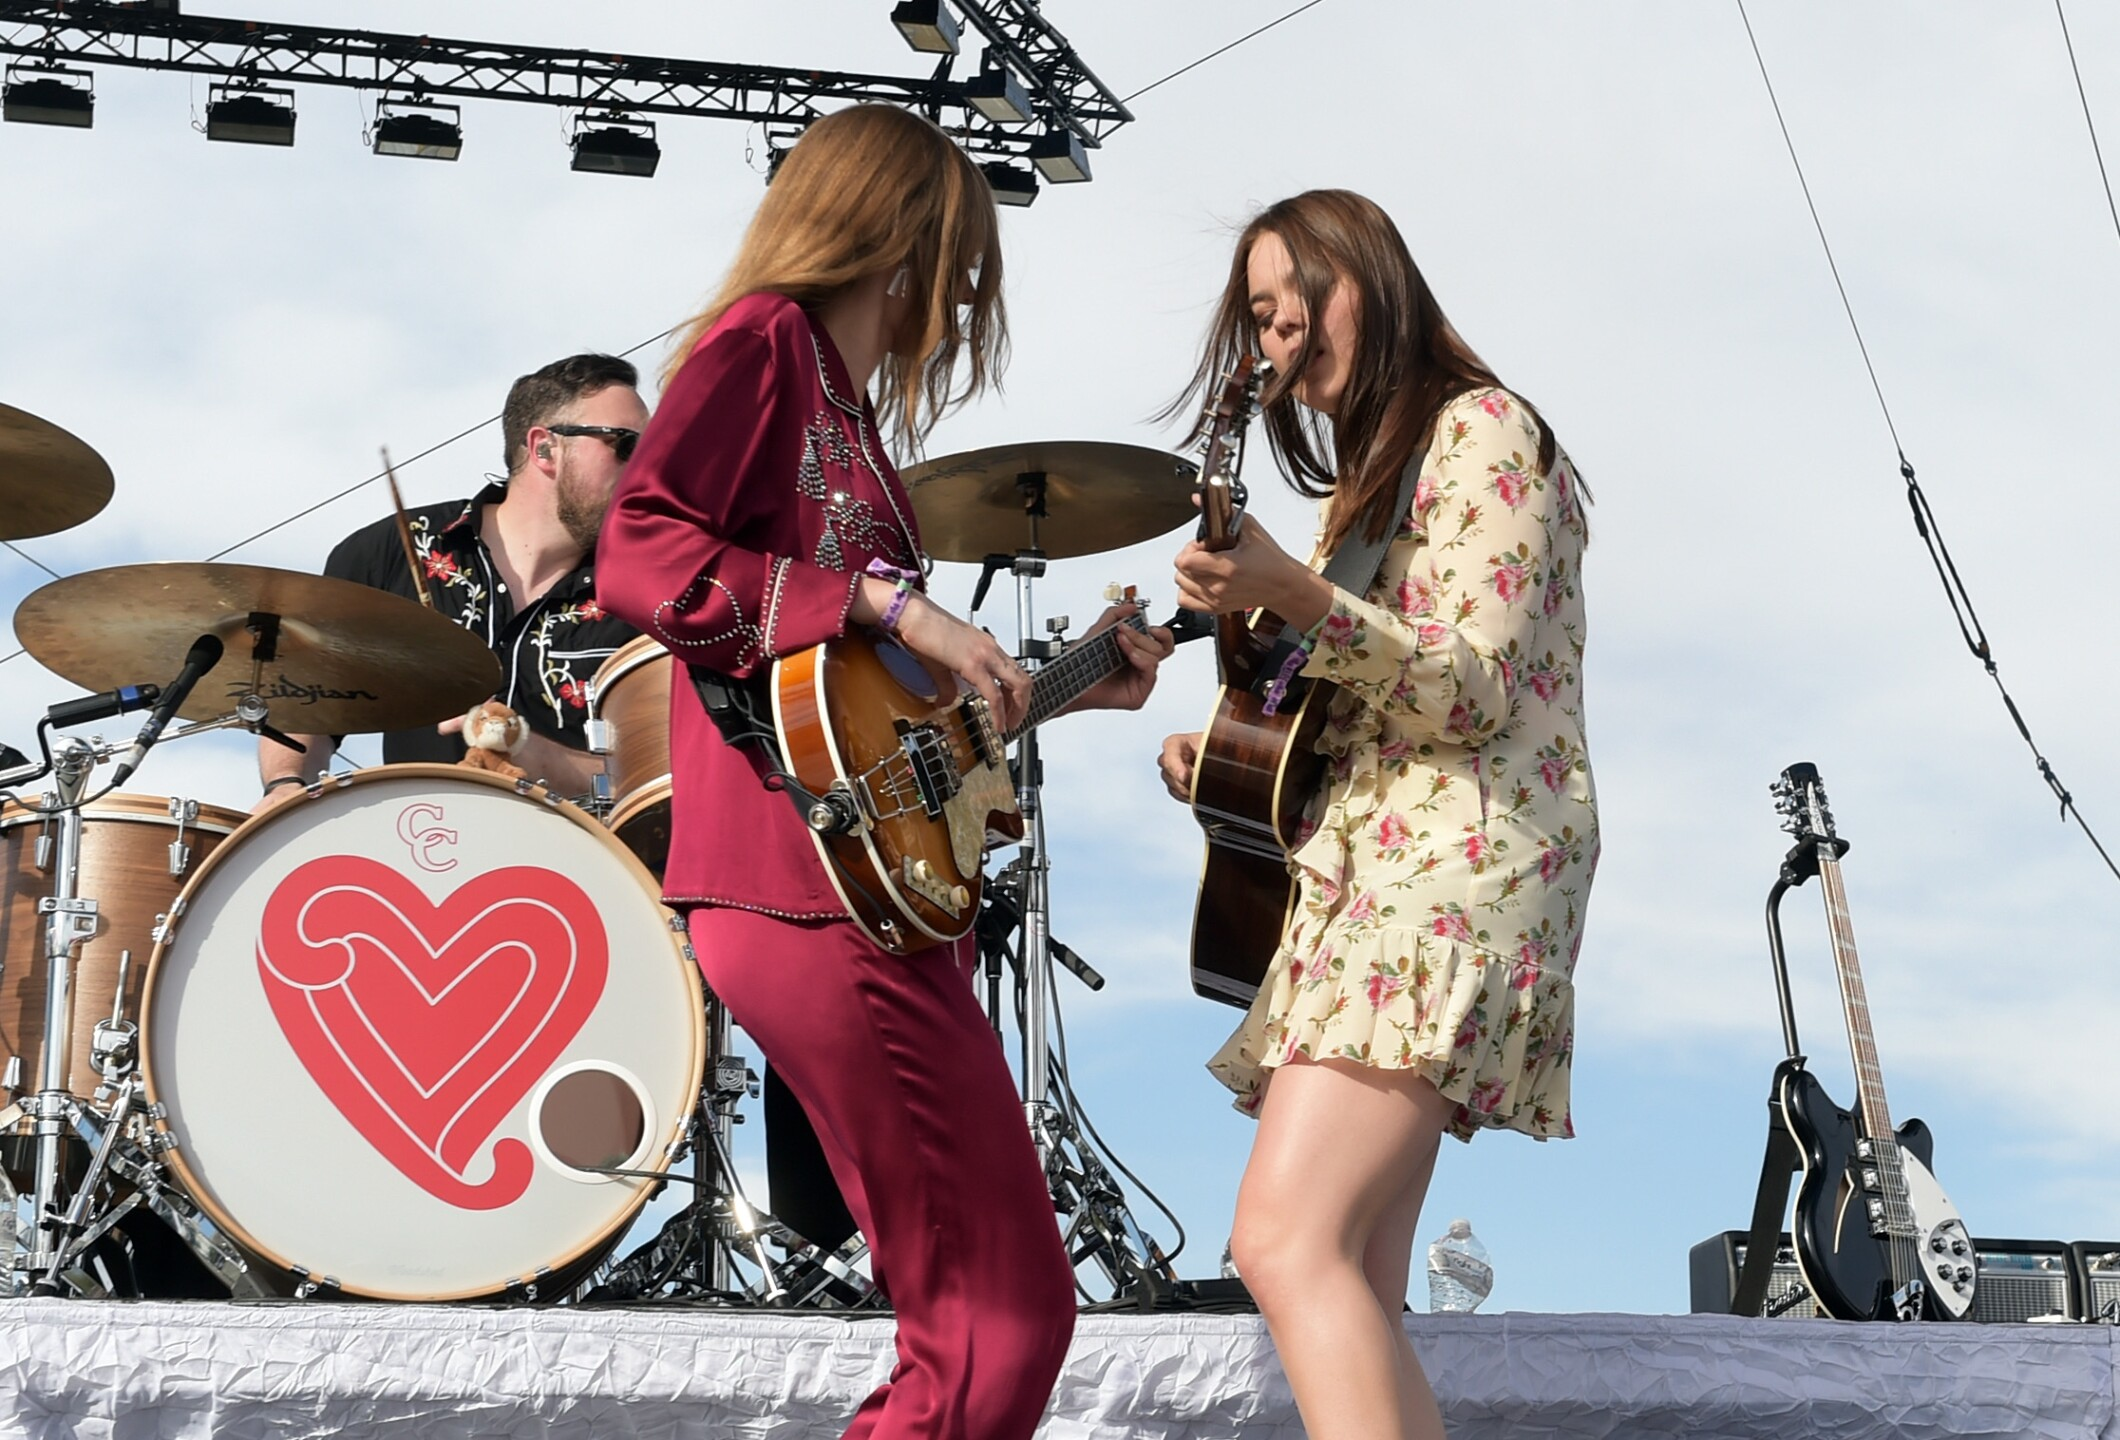 First Aid Kit will perform July 2 at Summerfest